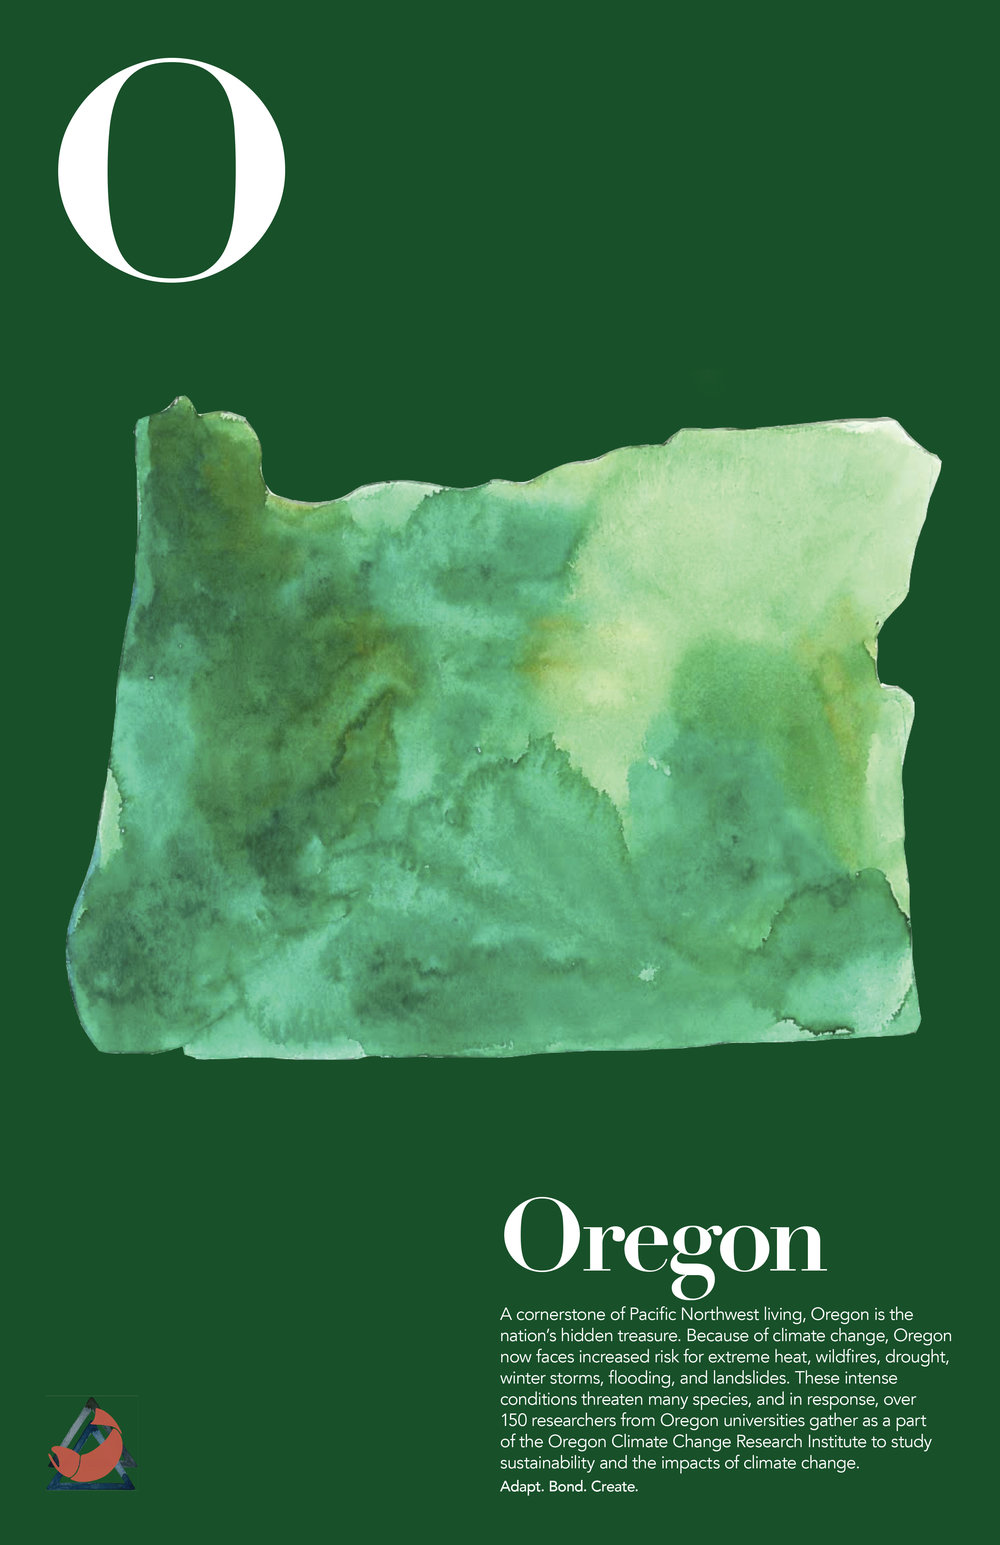 oregon_final copy.jpg